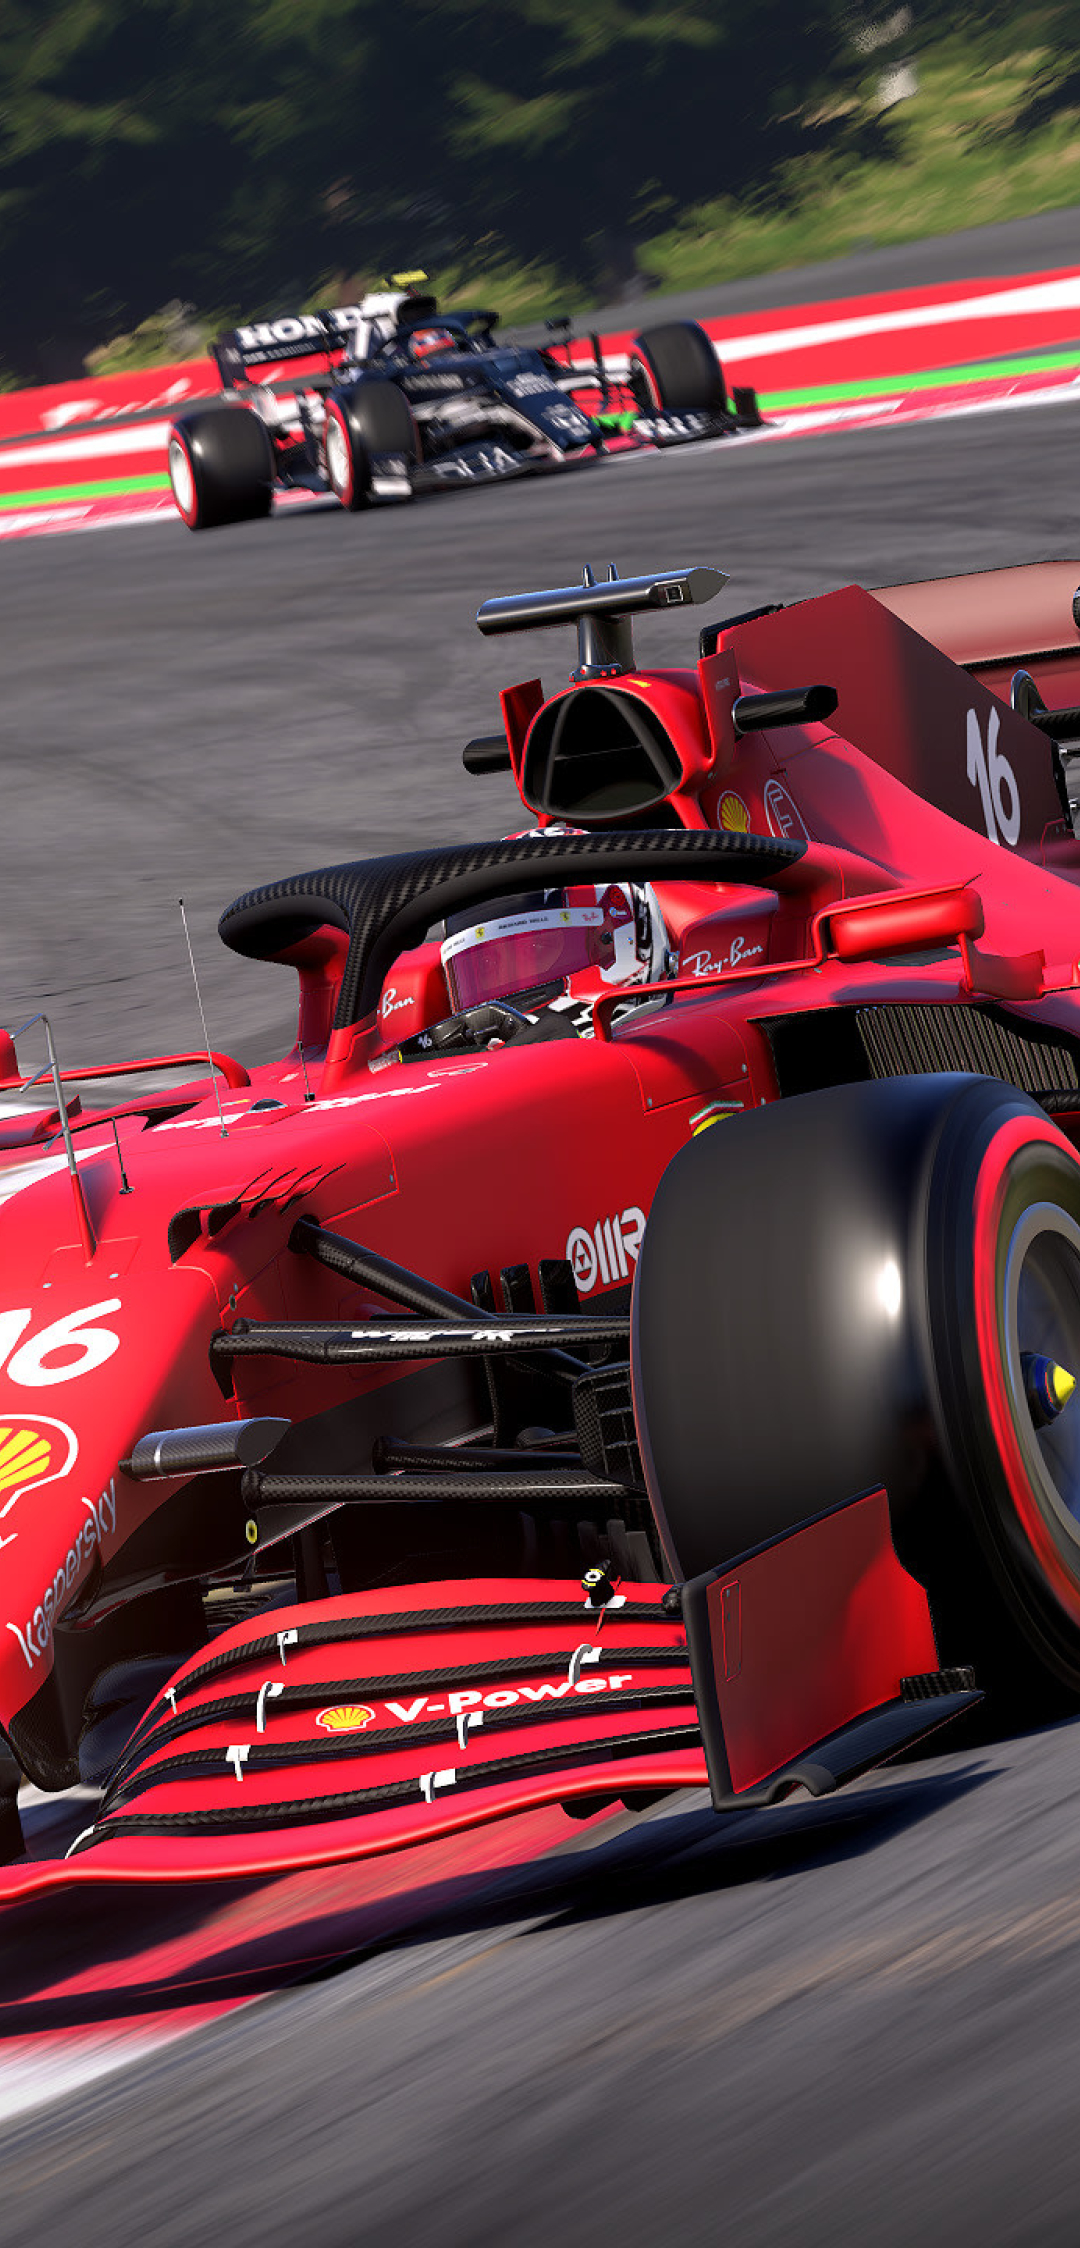 1080x2248 F1 2021 Hd 1080x2248 Resolution Wallpaper Hd Games 4k Wallpapers Images Photos And Background Wallpapers Den